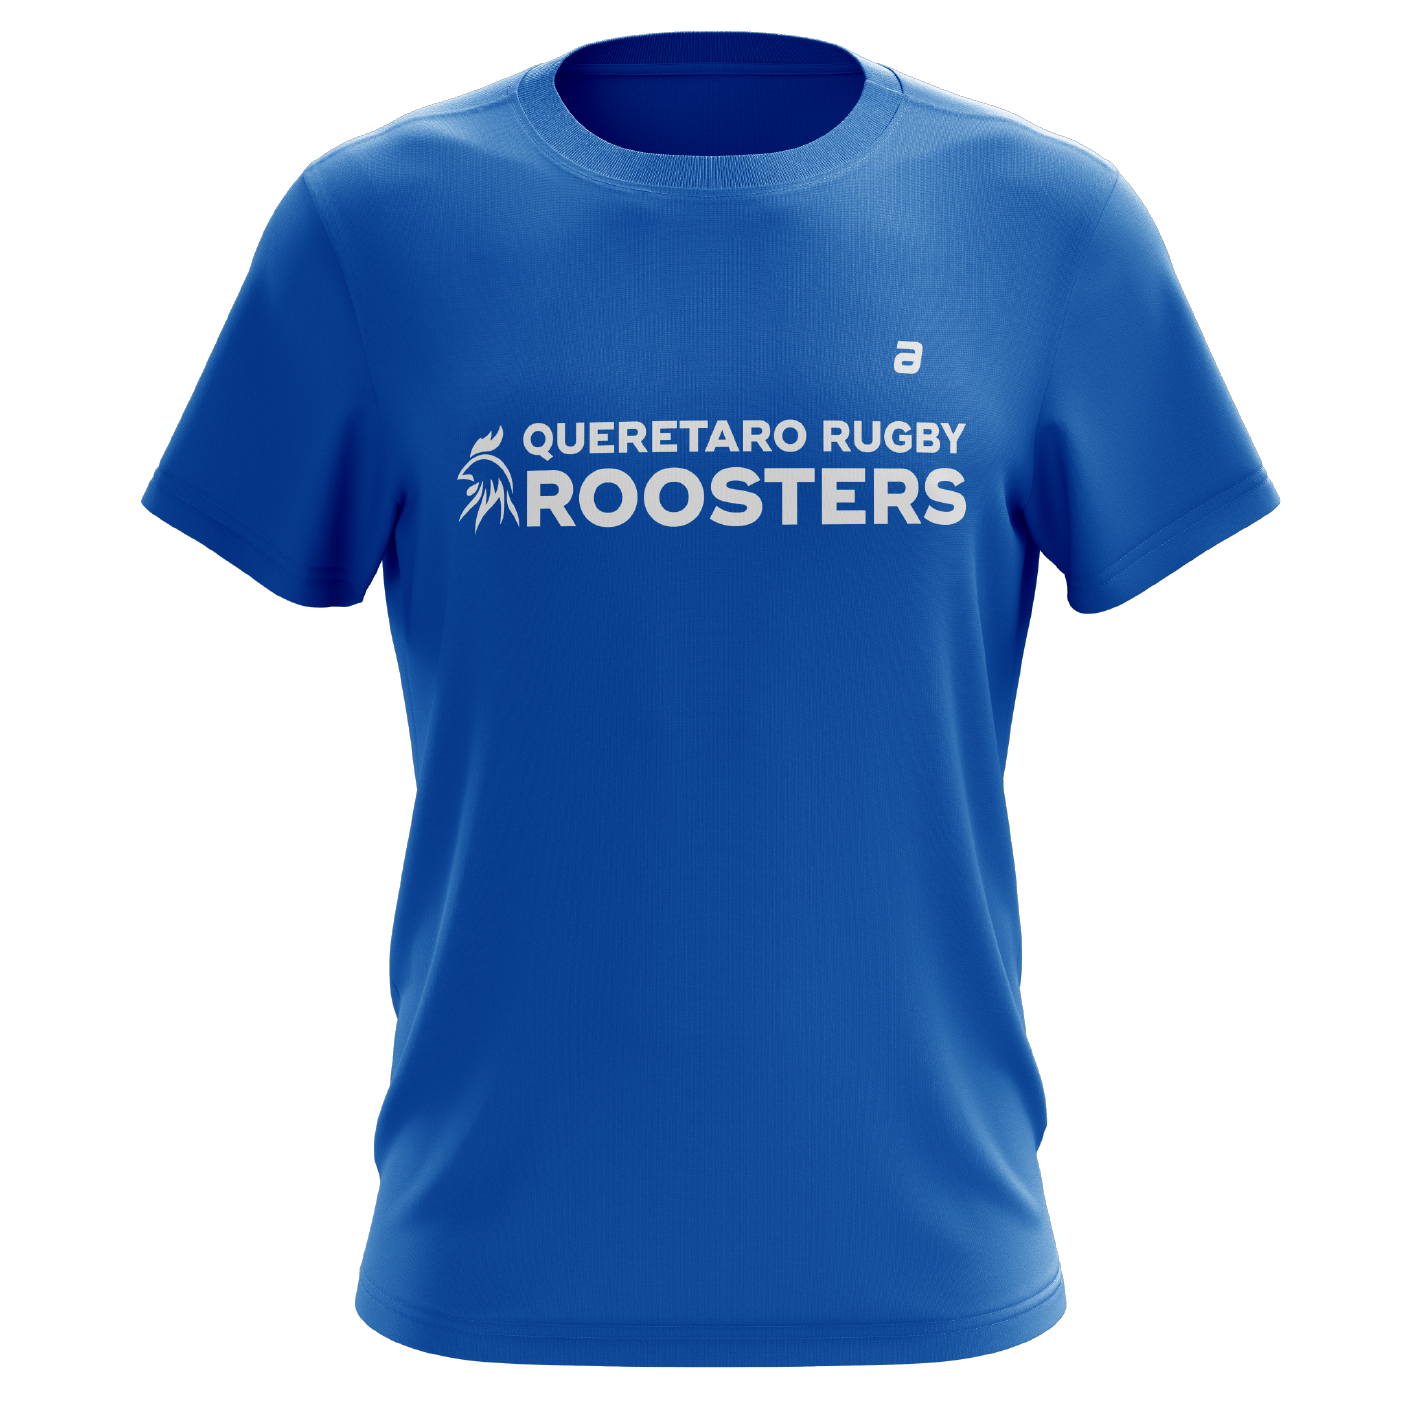 Playera Básica de Roosters Rugby Azul - ChampSports.mx 68342c2751f55